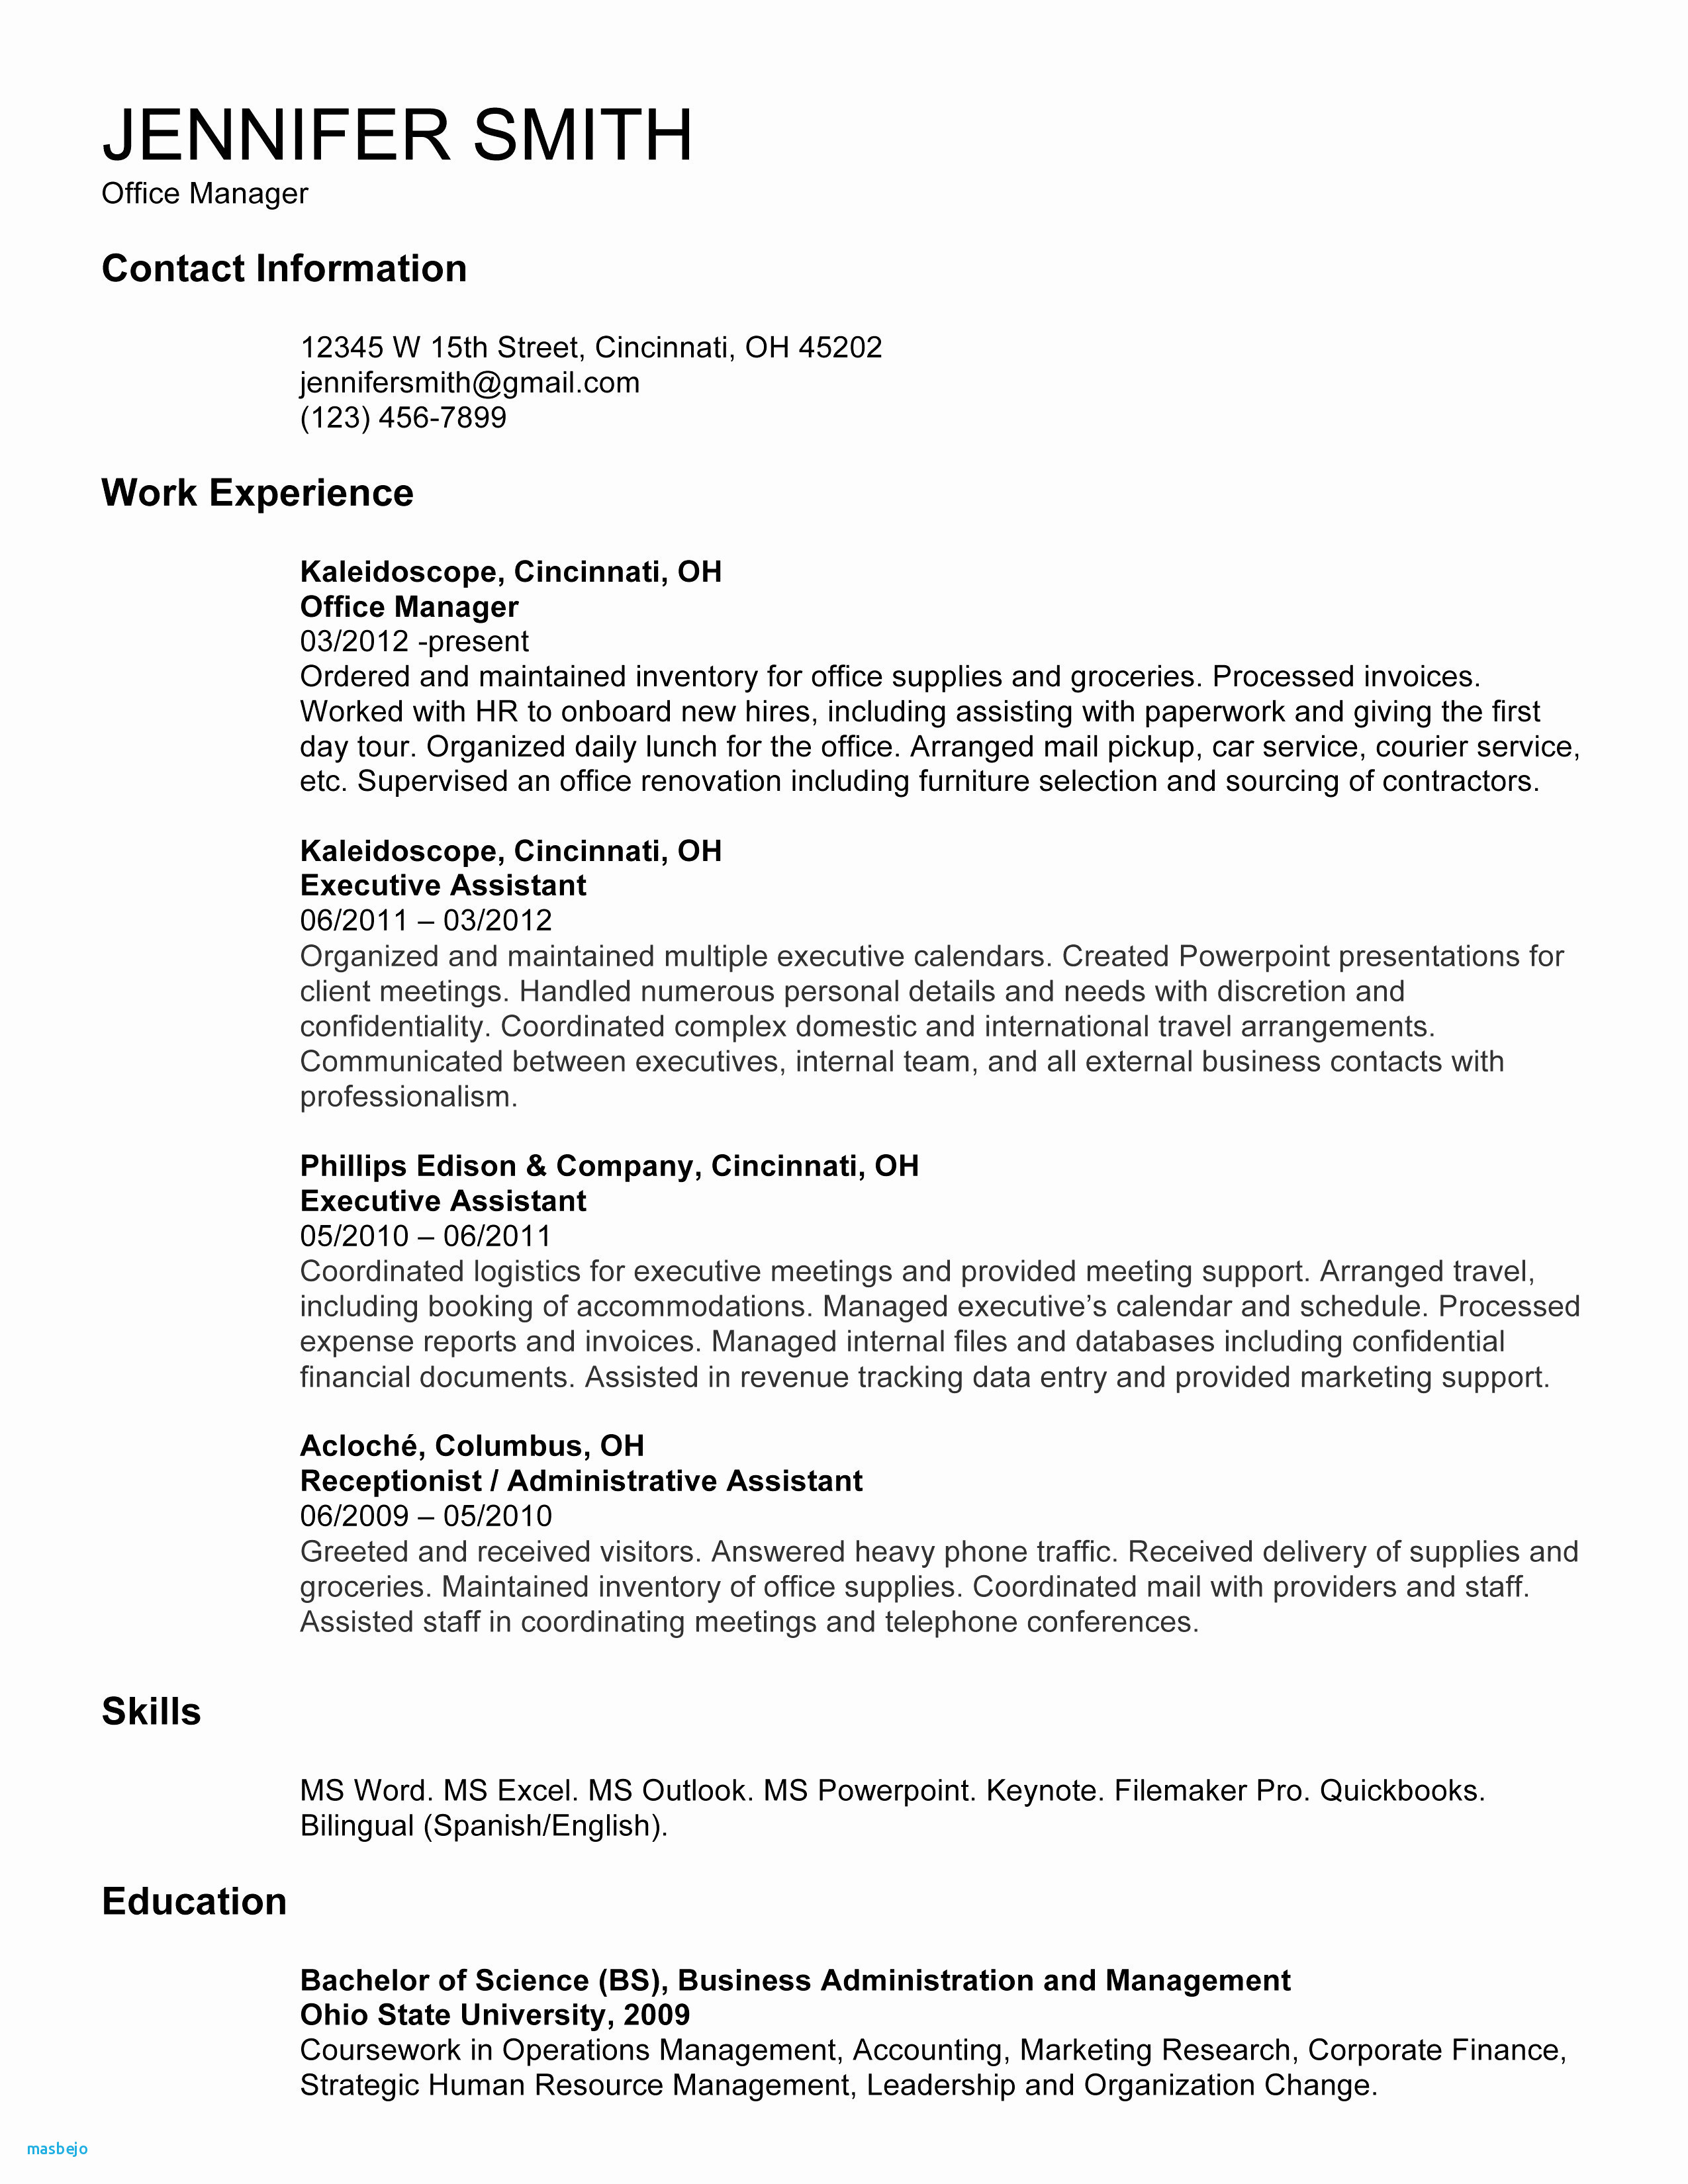 Internship Resume Template Microsoft Word - Internship Resume Example Intern Resume Sample Lovely College Resume